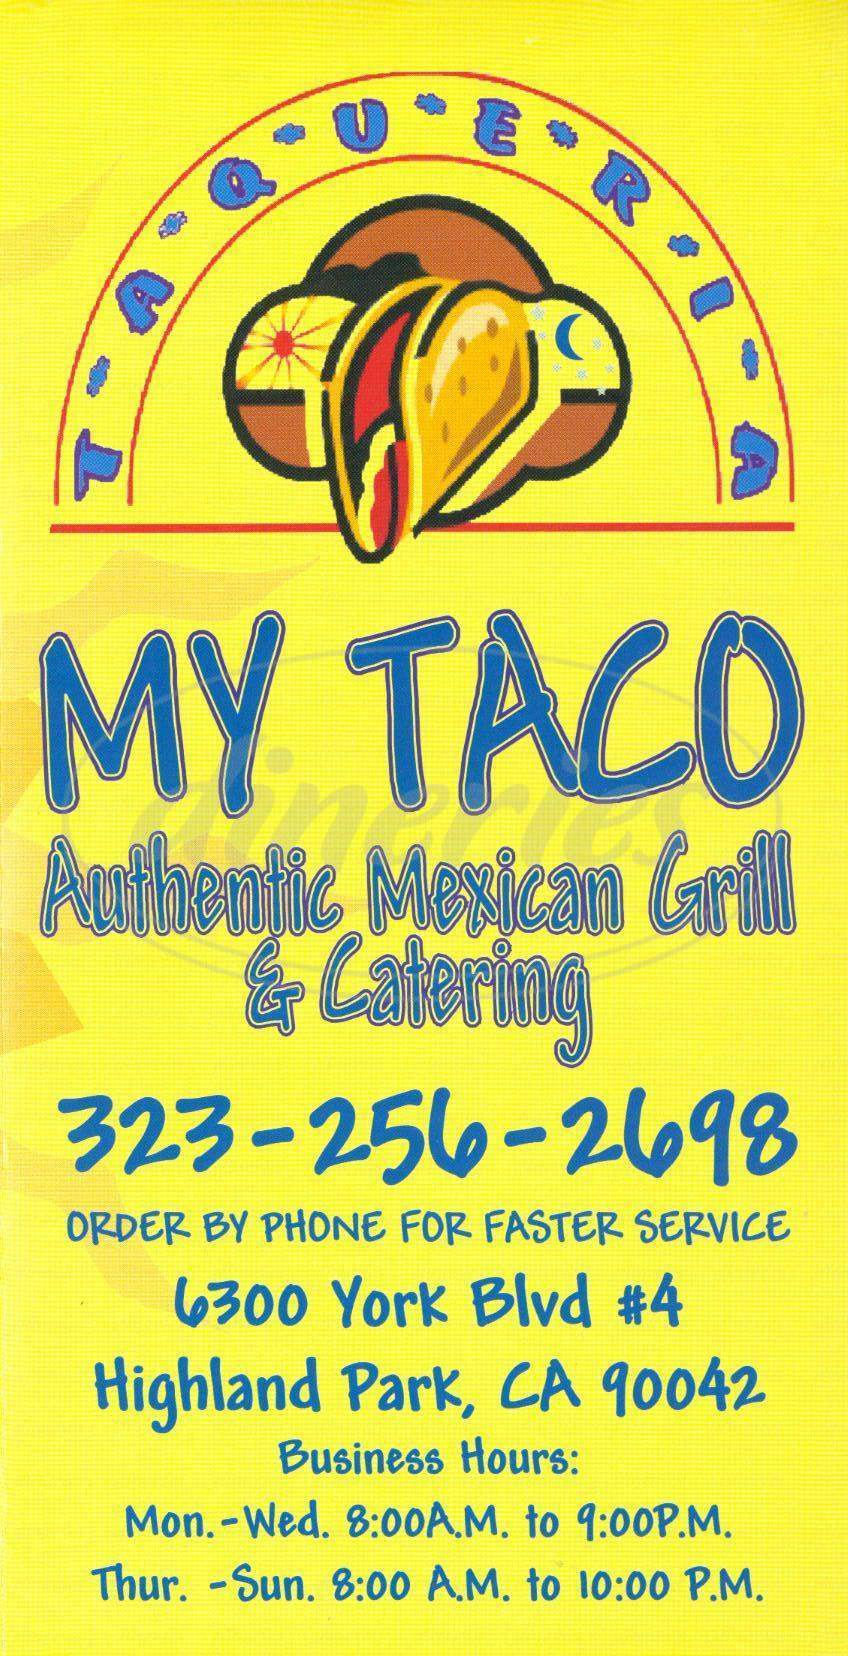 menu for My Taco Taqueria